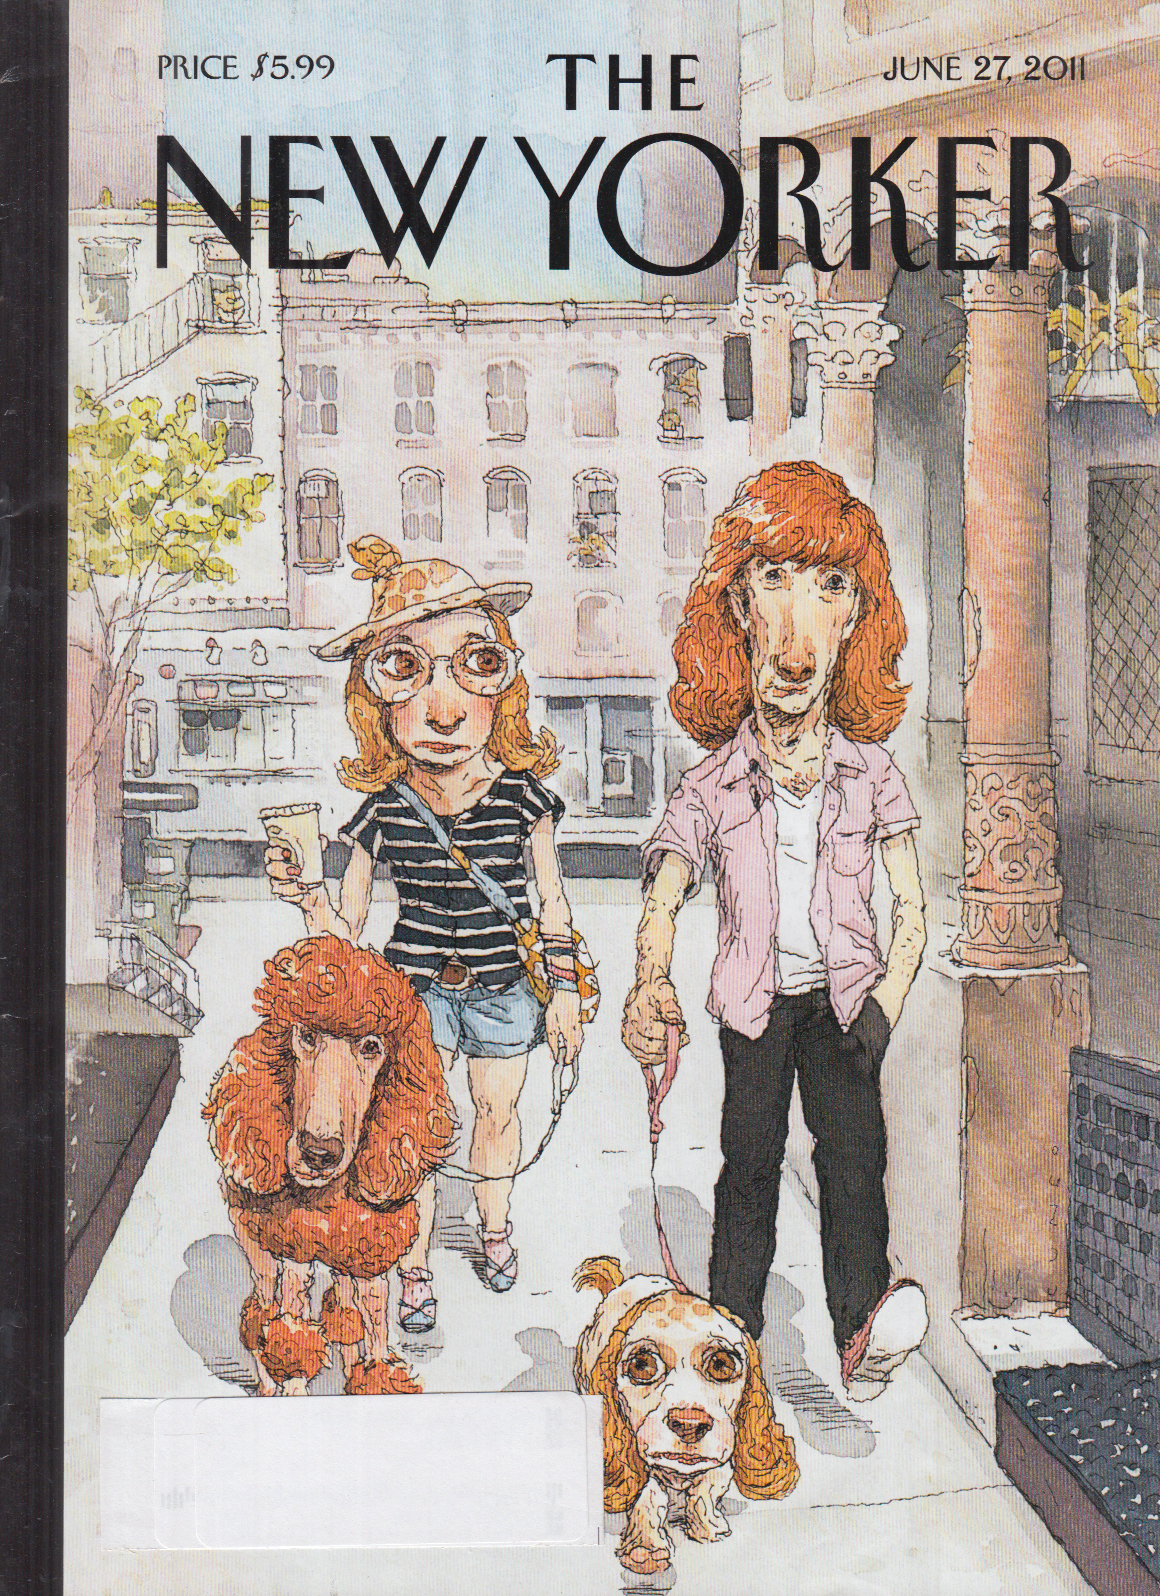 new yorker cover cuneo 6 27 2011 two dog walkers match each other s dogs